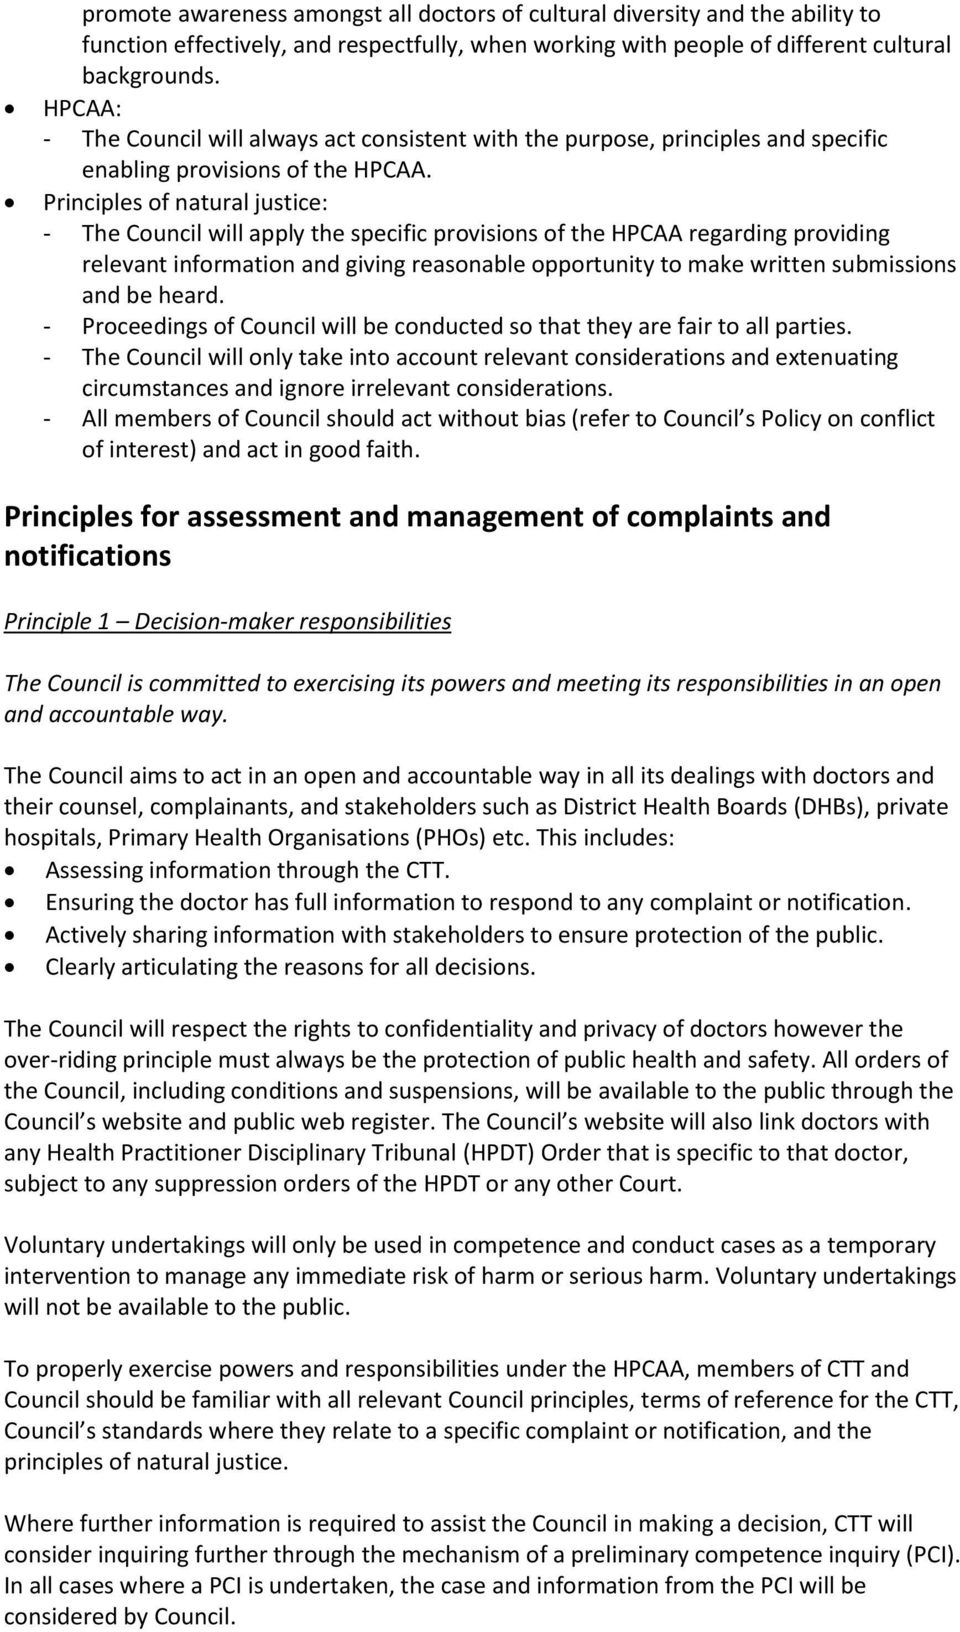 Principles of natural justice: - The Council will apply the specific provisions of the HPCAA regarding providing relevant information and giving reasonable opportunity to make written submissions and